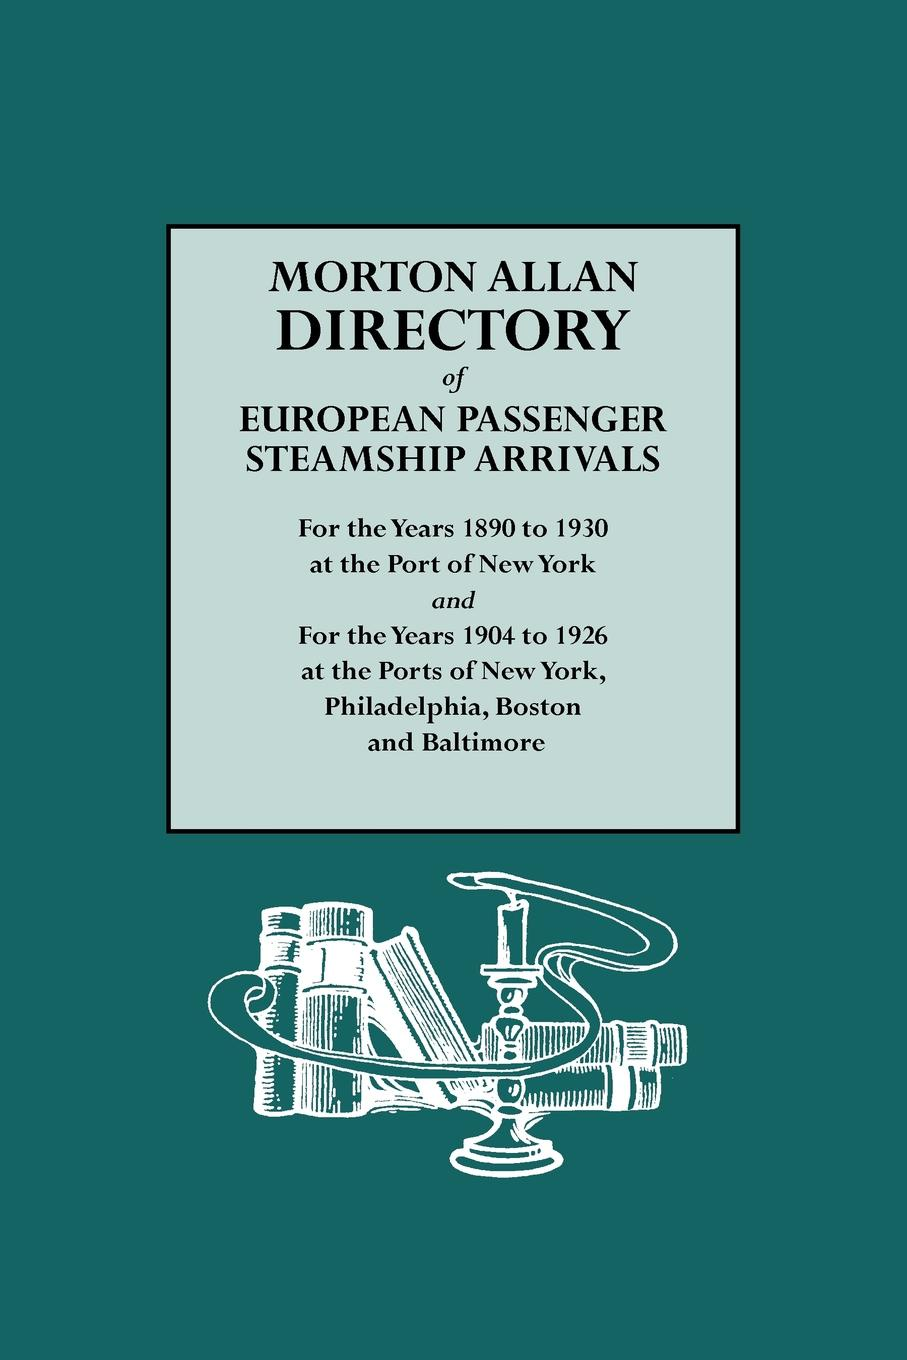 Morton Allan Directory of European Passenger Steamship Arrivals for the Years 1890-1930 at Port New York, and 1904-1926 Po